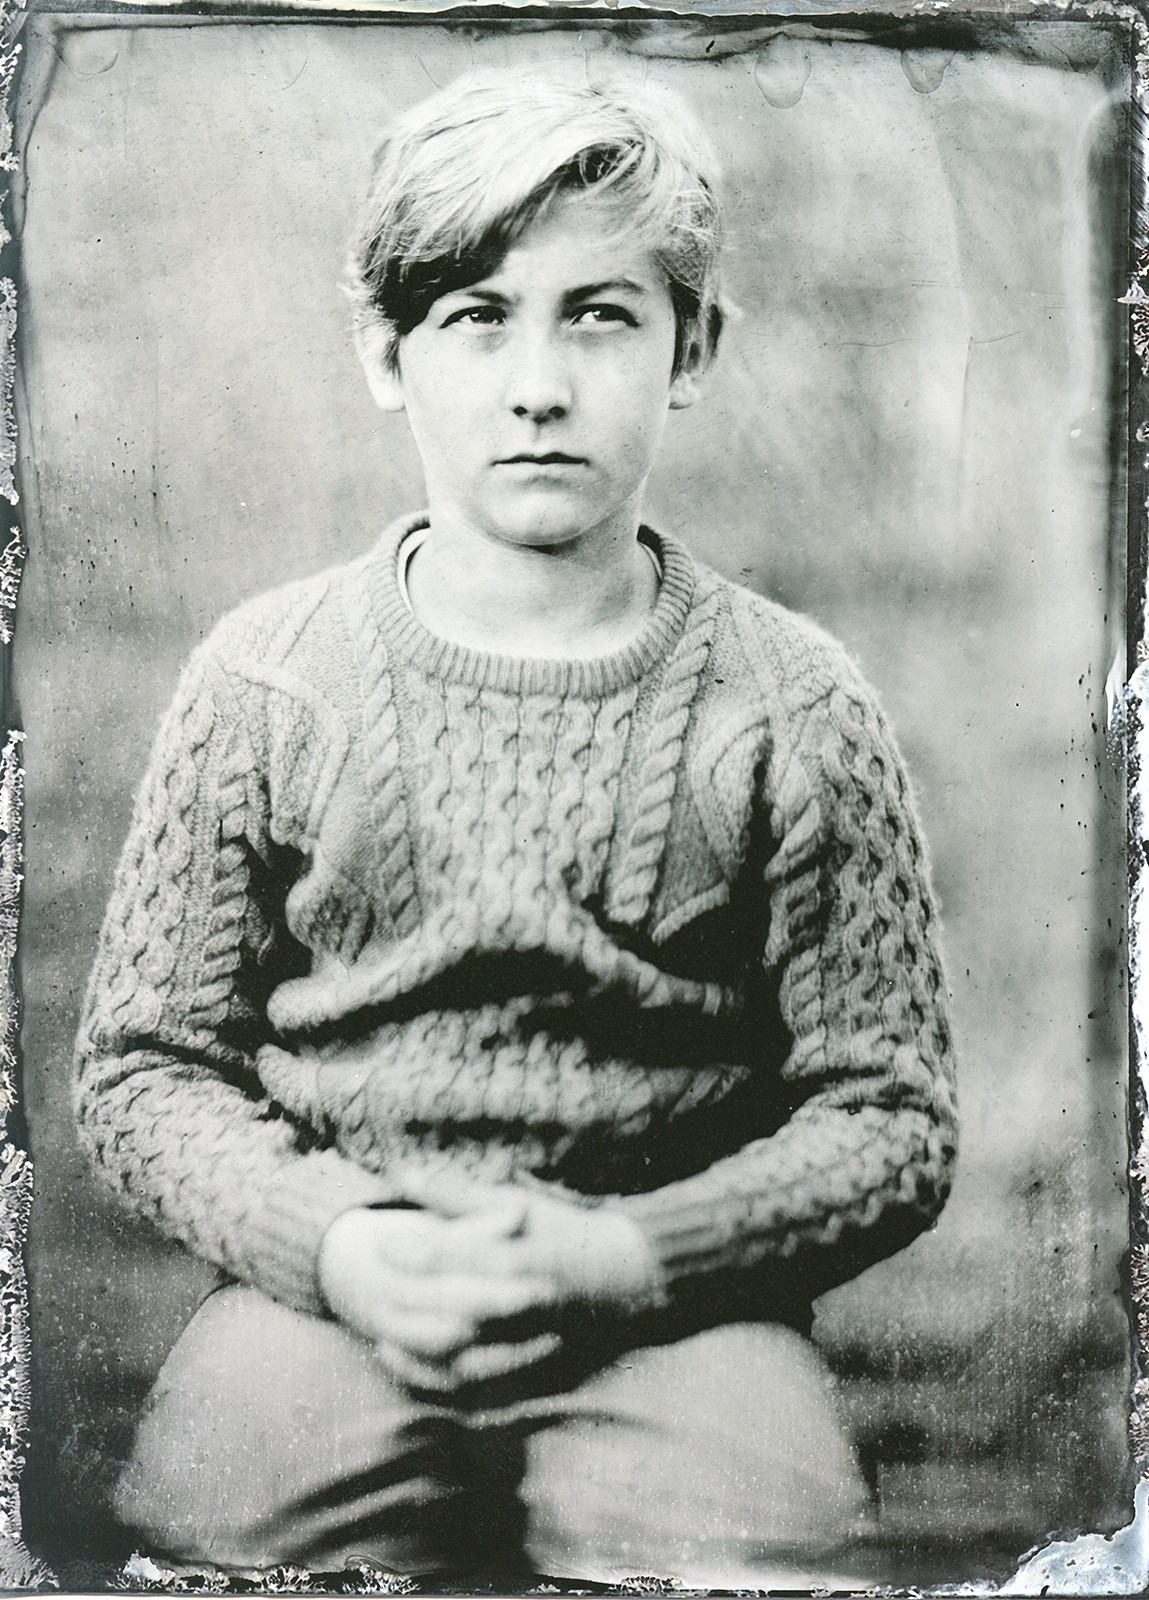 Mladý fotograf focený na kolodium / A young photographer on Tintype